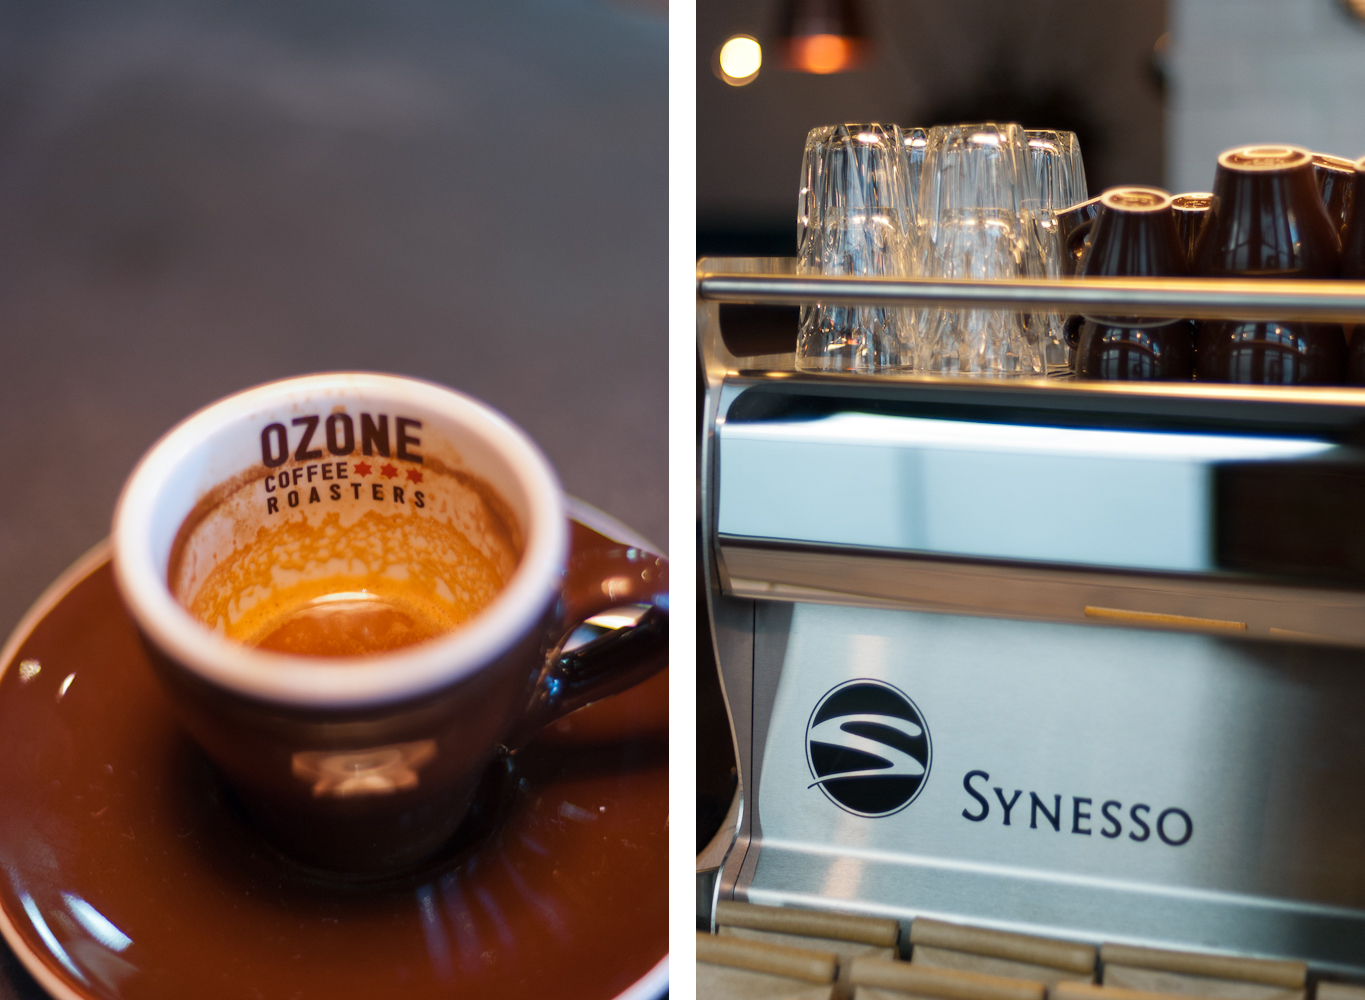 Ozone Coffee Roasters in Old Street, London